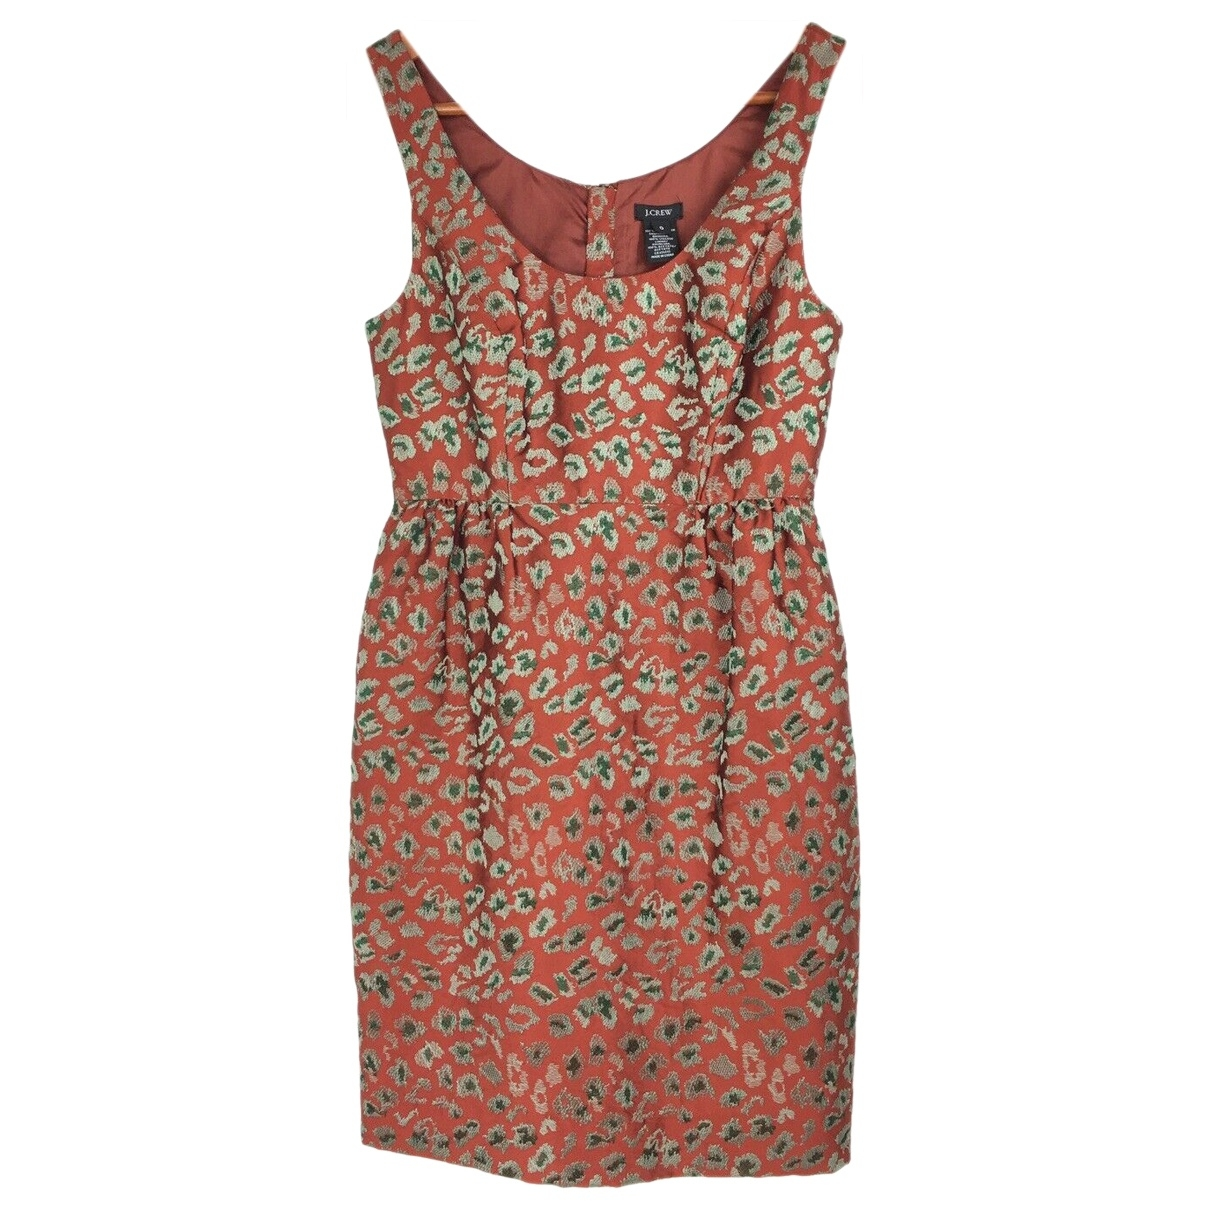 J.crew \N Orange dress for Women 0 0-5